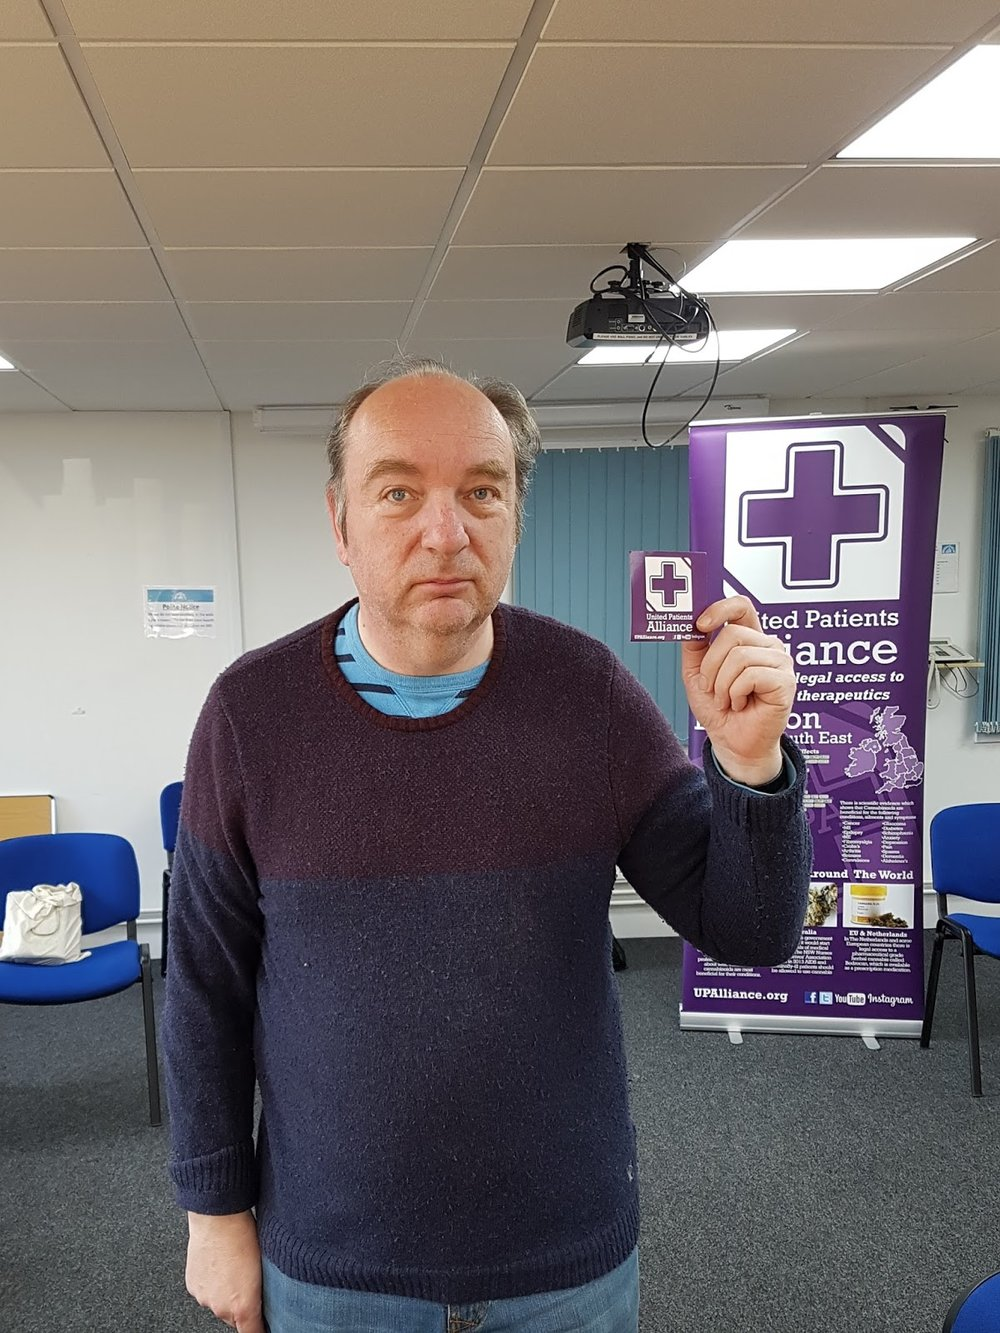 Former UK Government Drugs Minister and LibDem MP for Lewes, Norman Baker